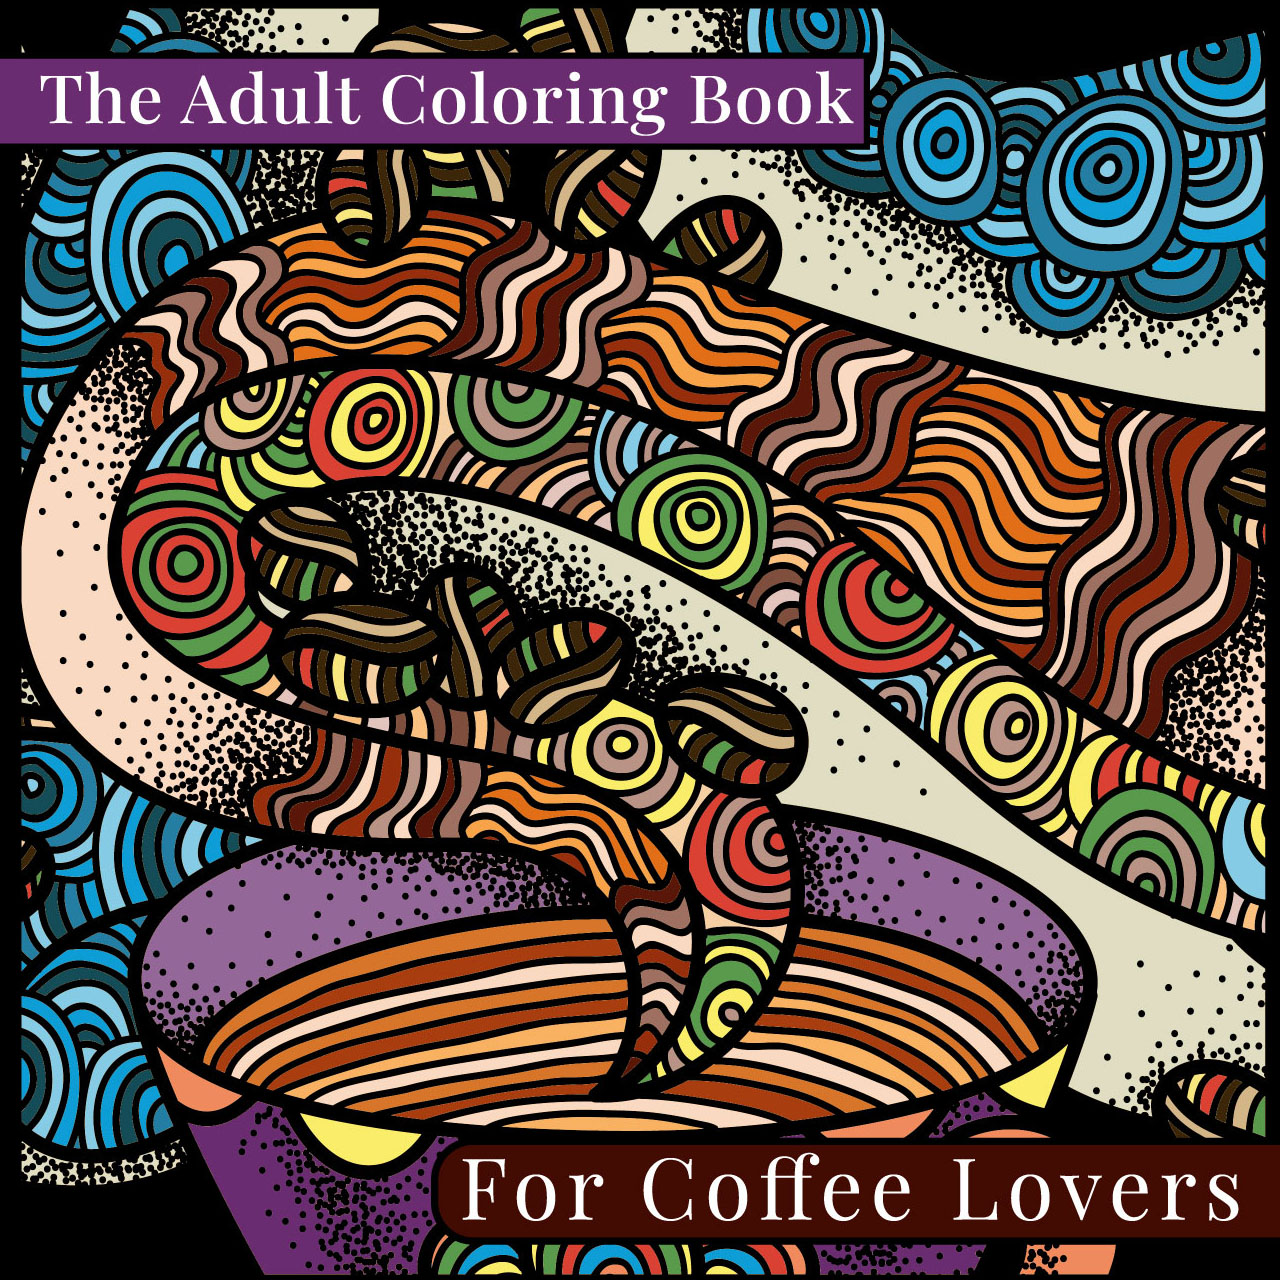 The Adult Coloring Book for Coffee Lovers Front Cover